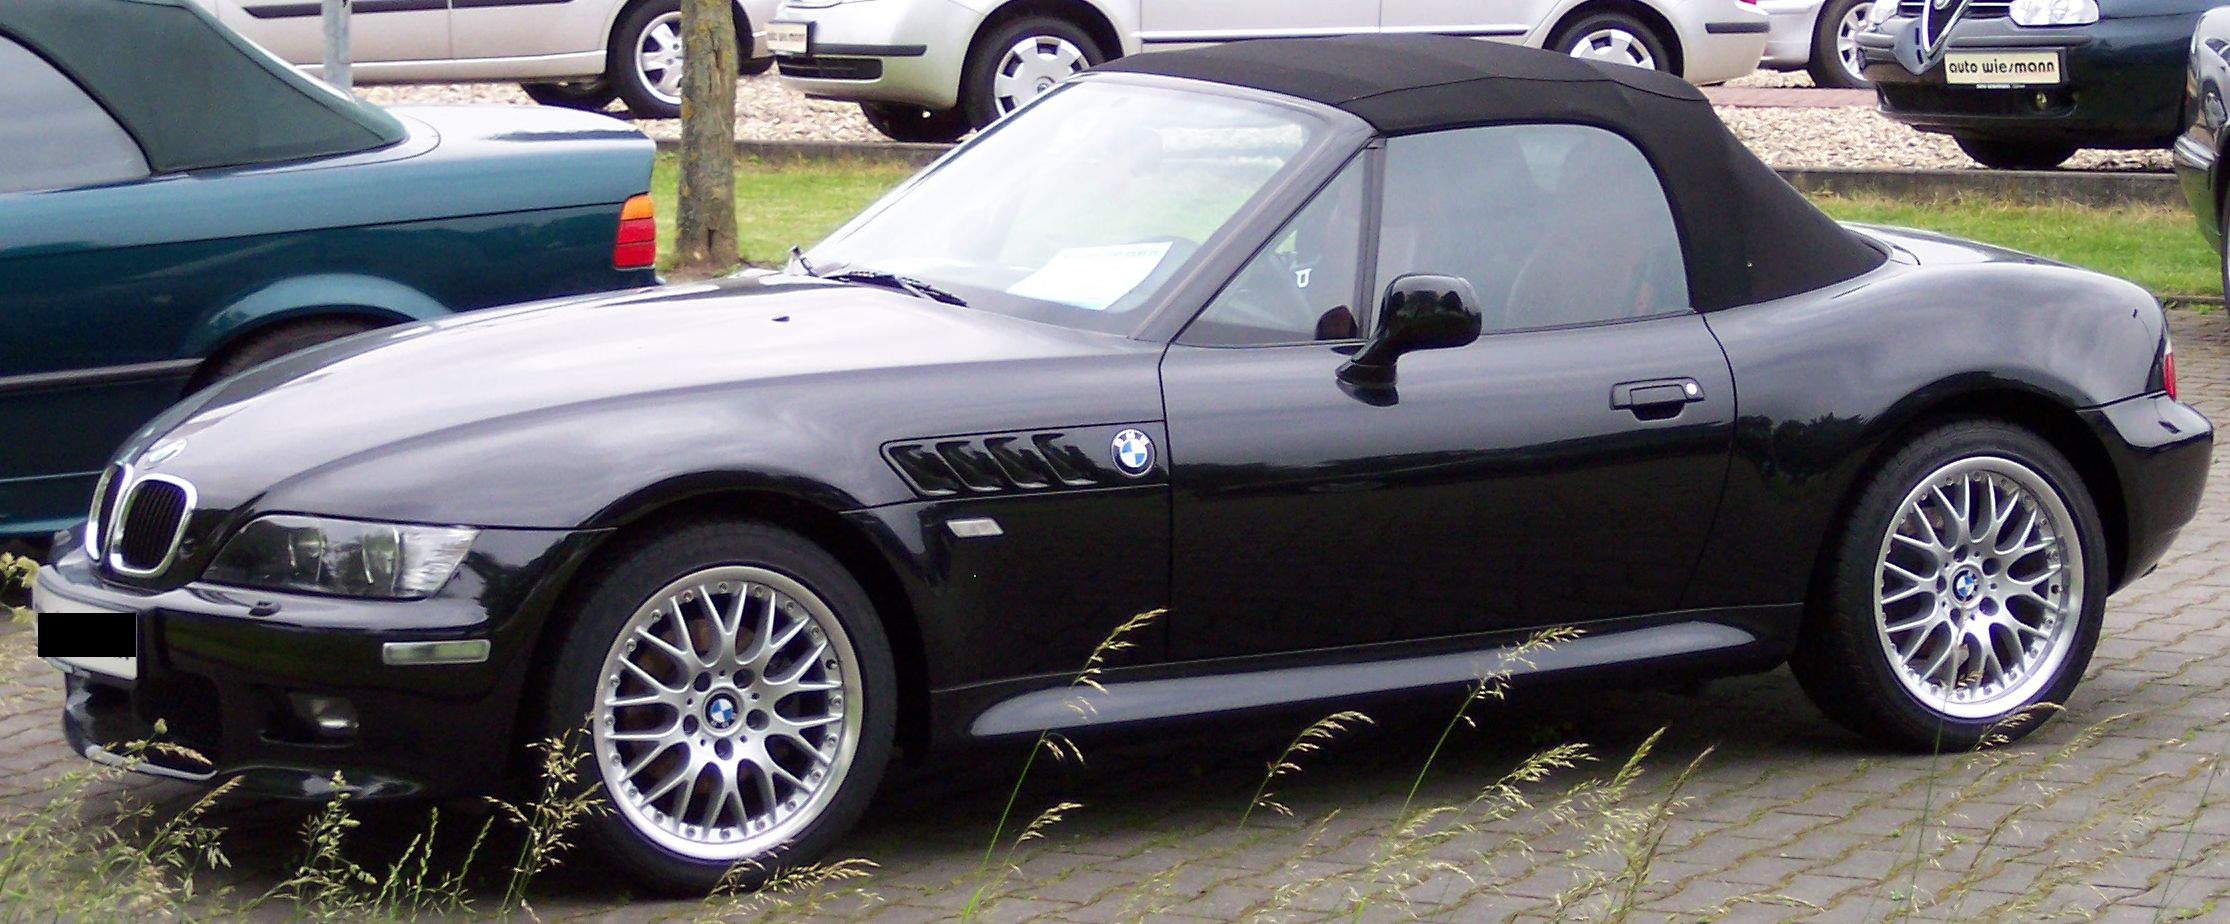 Archivo Bmw Z3 Black Vl Jpg Wikipedia La Enciclopedia Libre